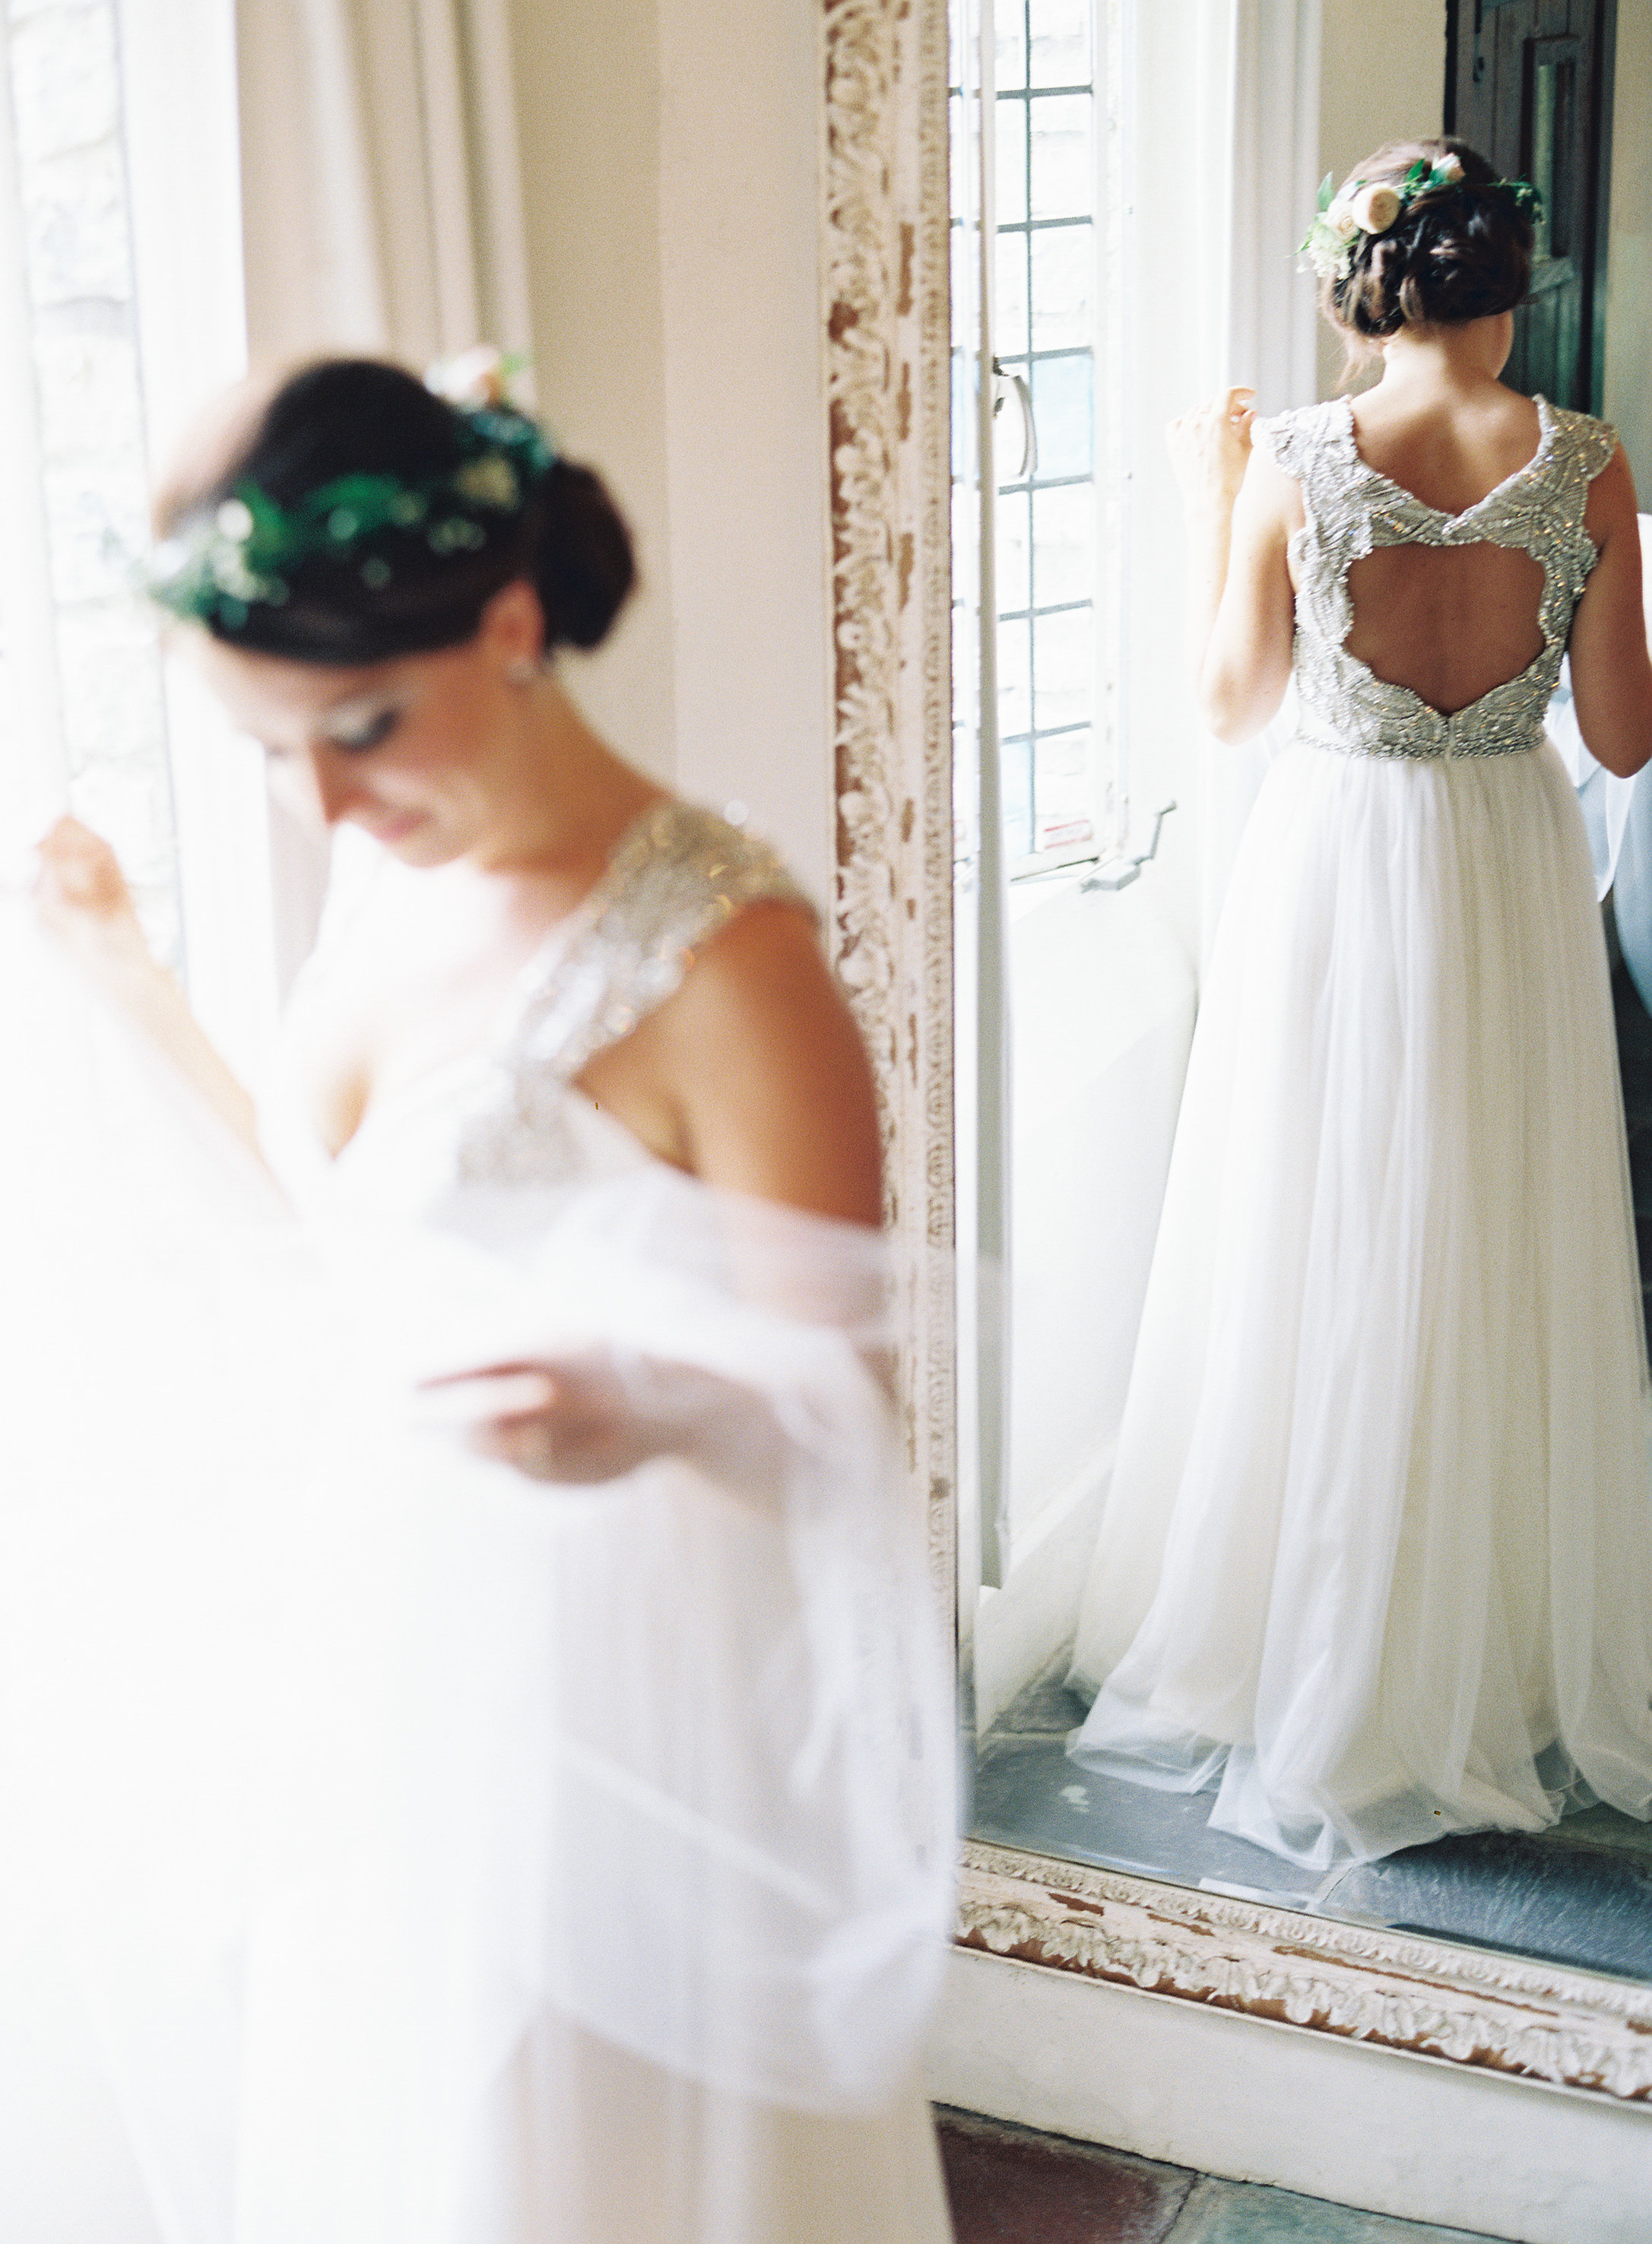 A Bride with an Open-Back Wedding Dress with Sequin Details